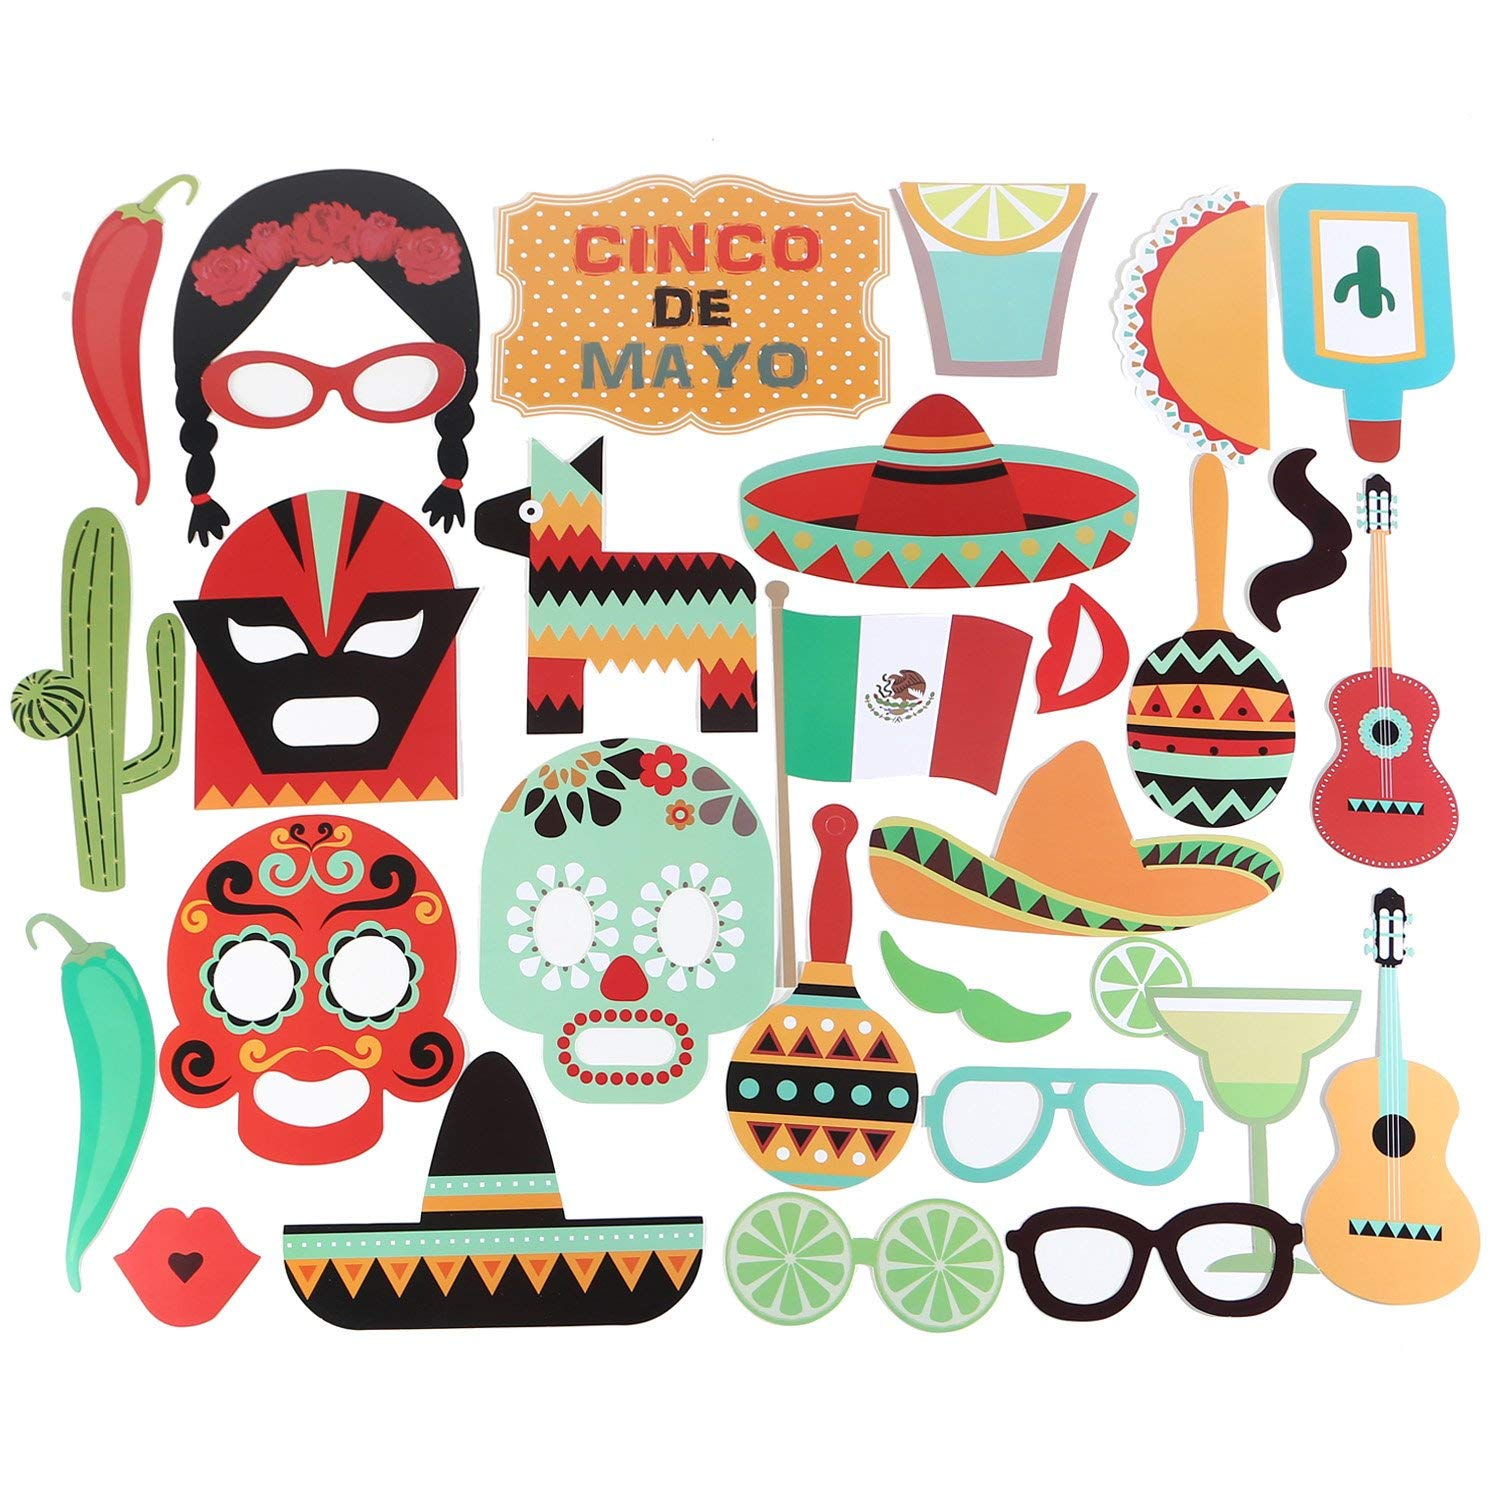 Humerry Mexican Photo Booth Props Kit with Stick DIY Posing Cinco De Mayo Fiesta Party Birthday Wedding Supplies Decorations 29 Count